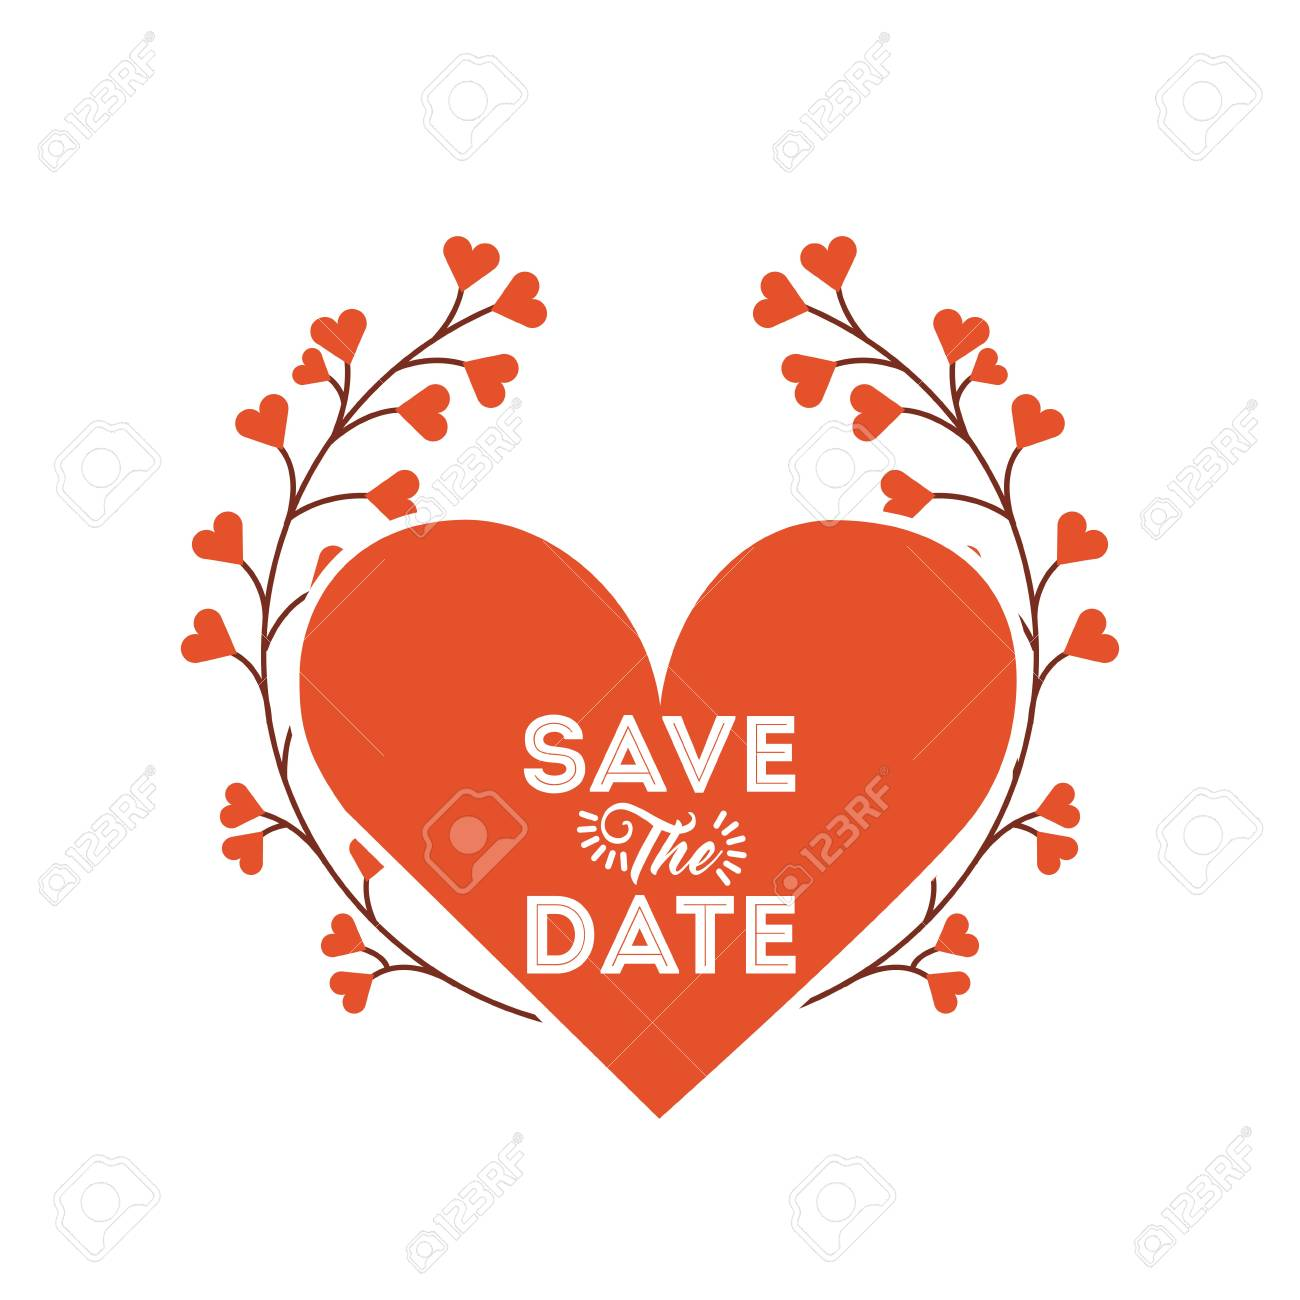 8c9f2eba4a00d save the date card with red heart and flowers wreath over white..